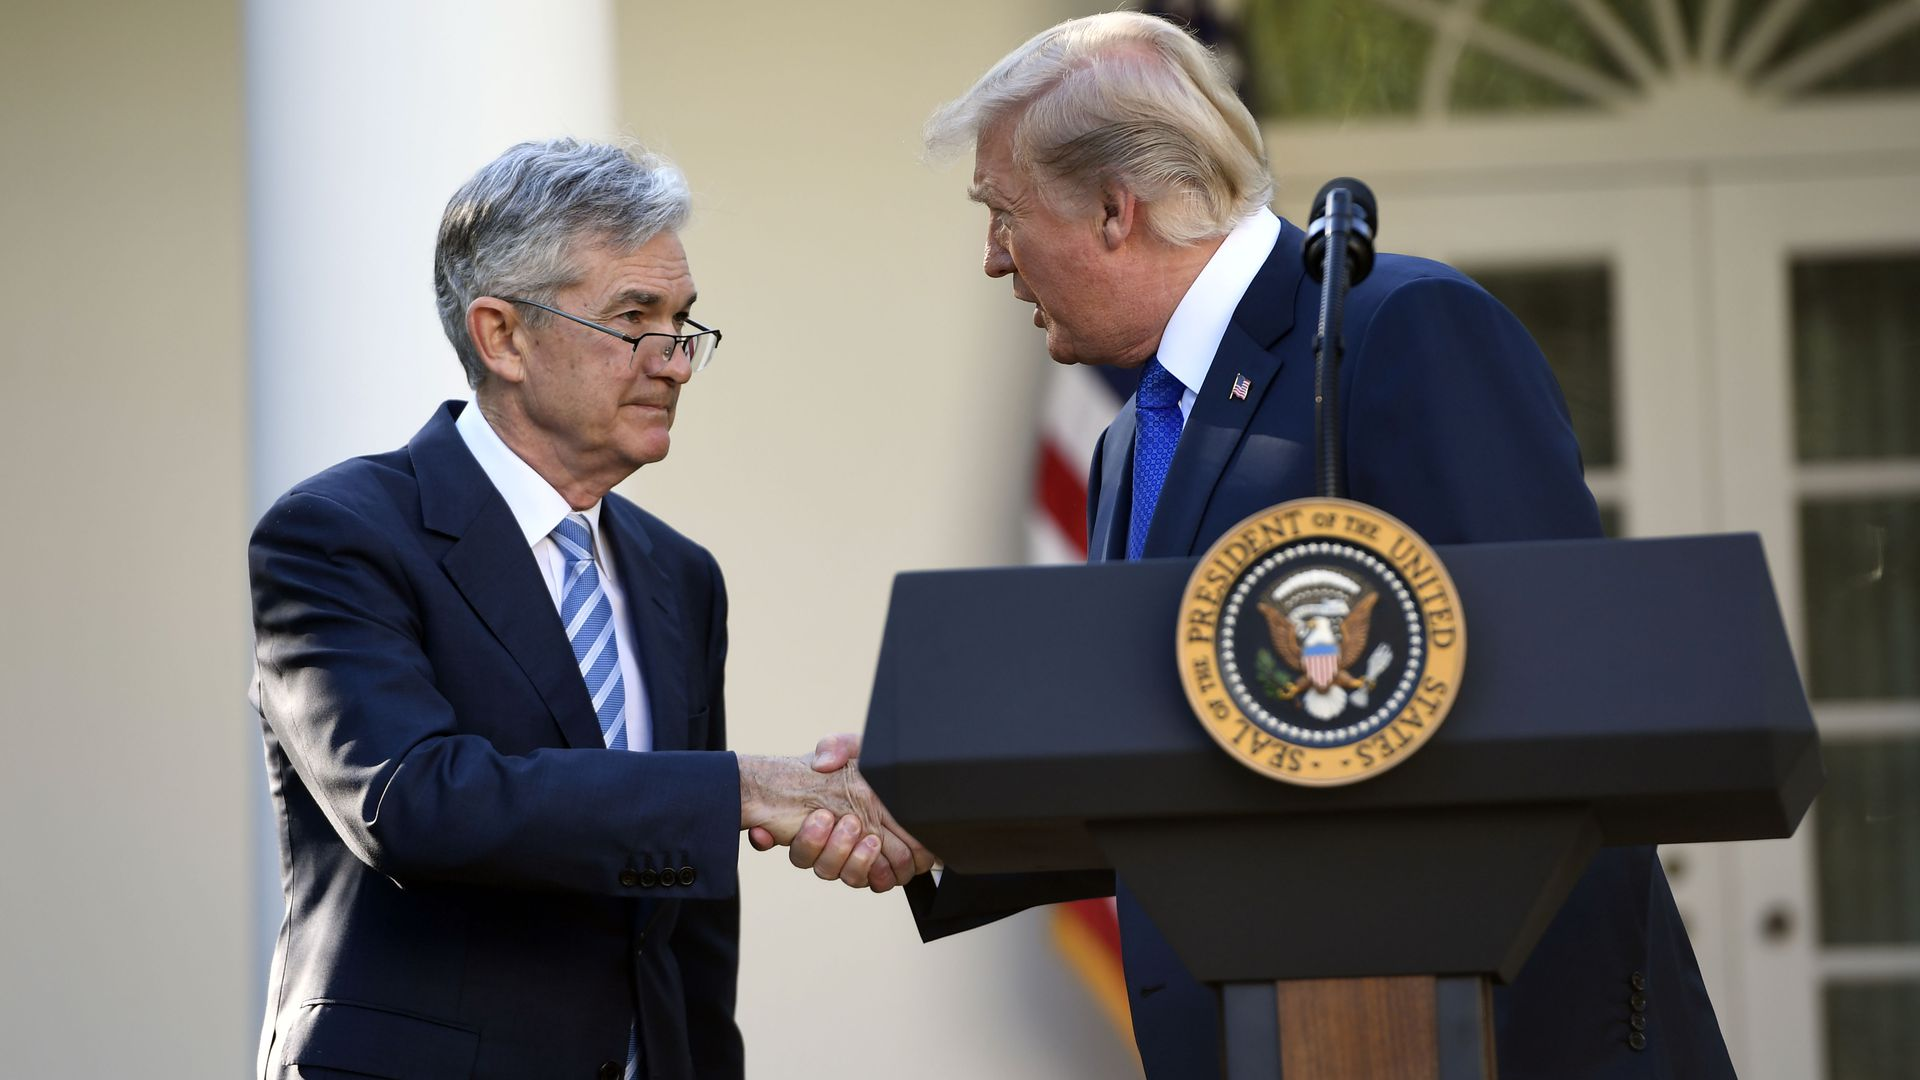 US President Donald Trump shakes hands as he announces his nominee for Chairman of the Federal Reserve, Jerome Powell, in the Rose Garden of the White House in Washington, DC,